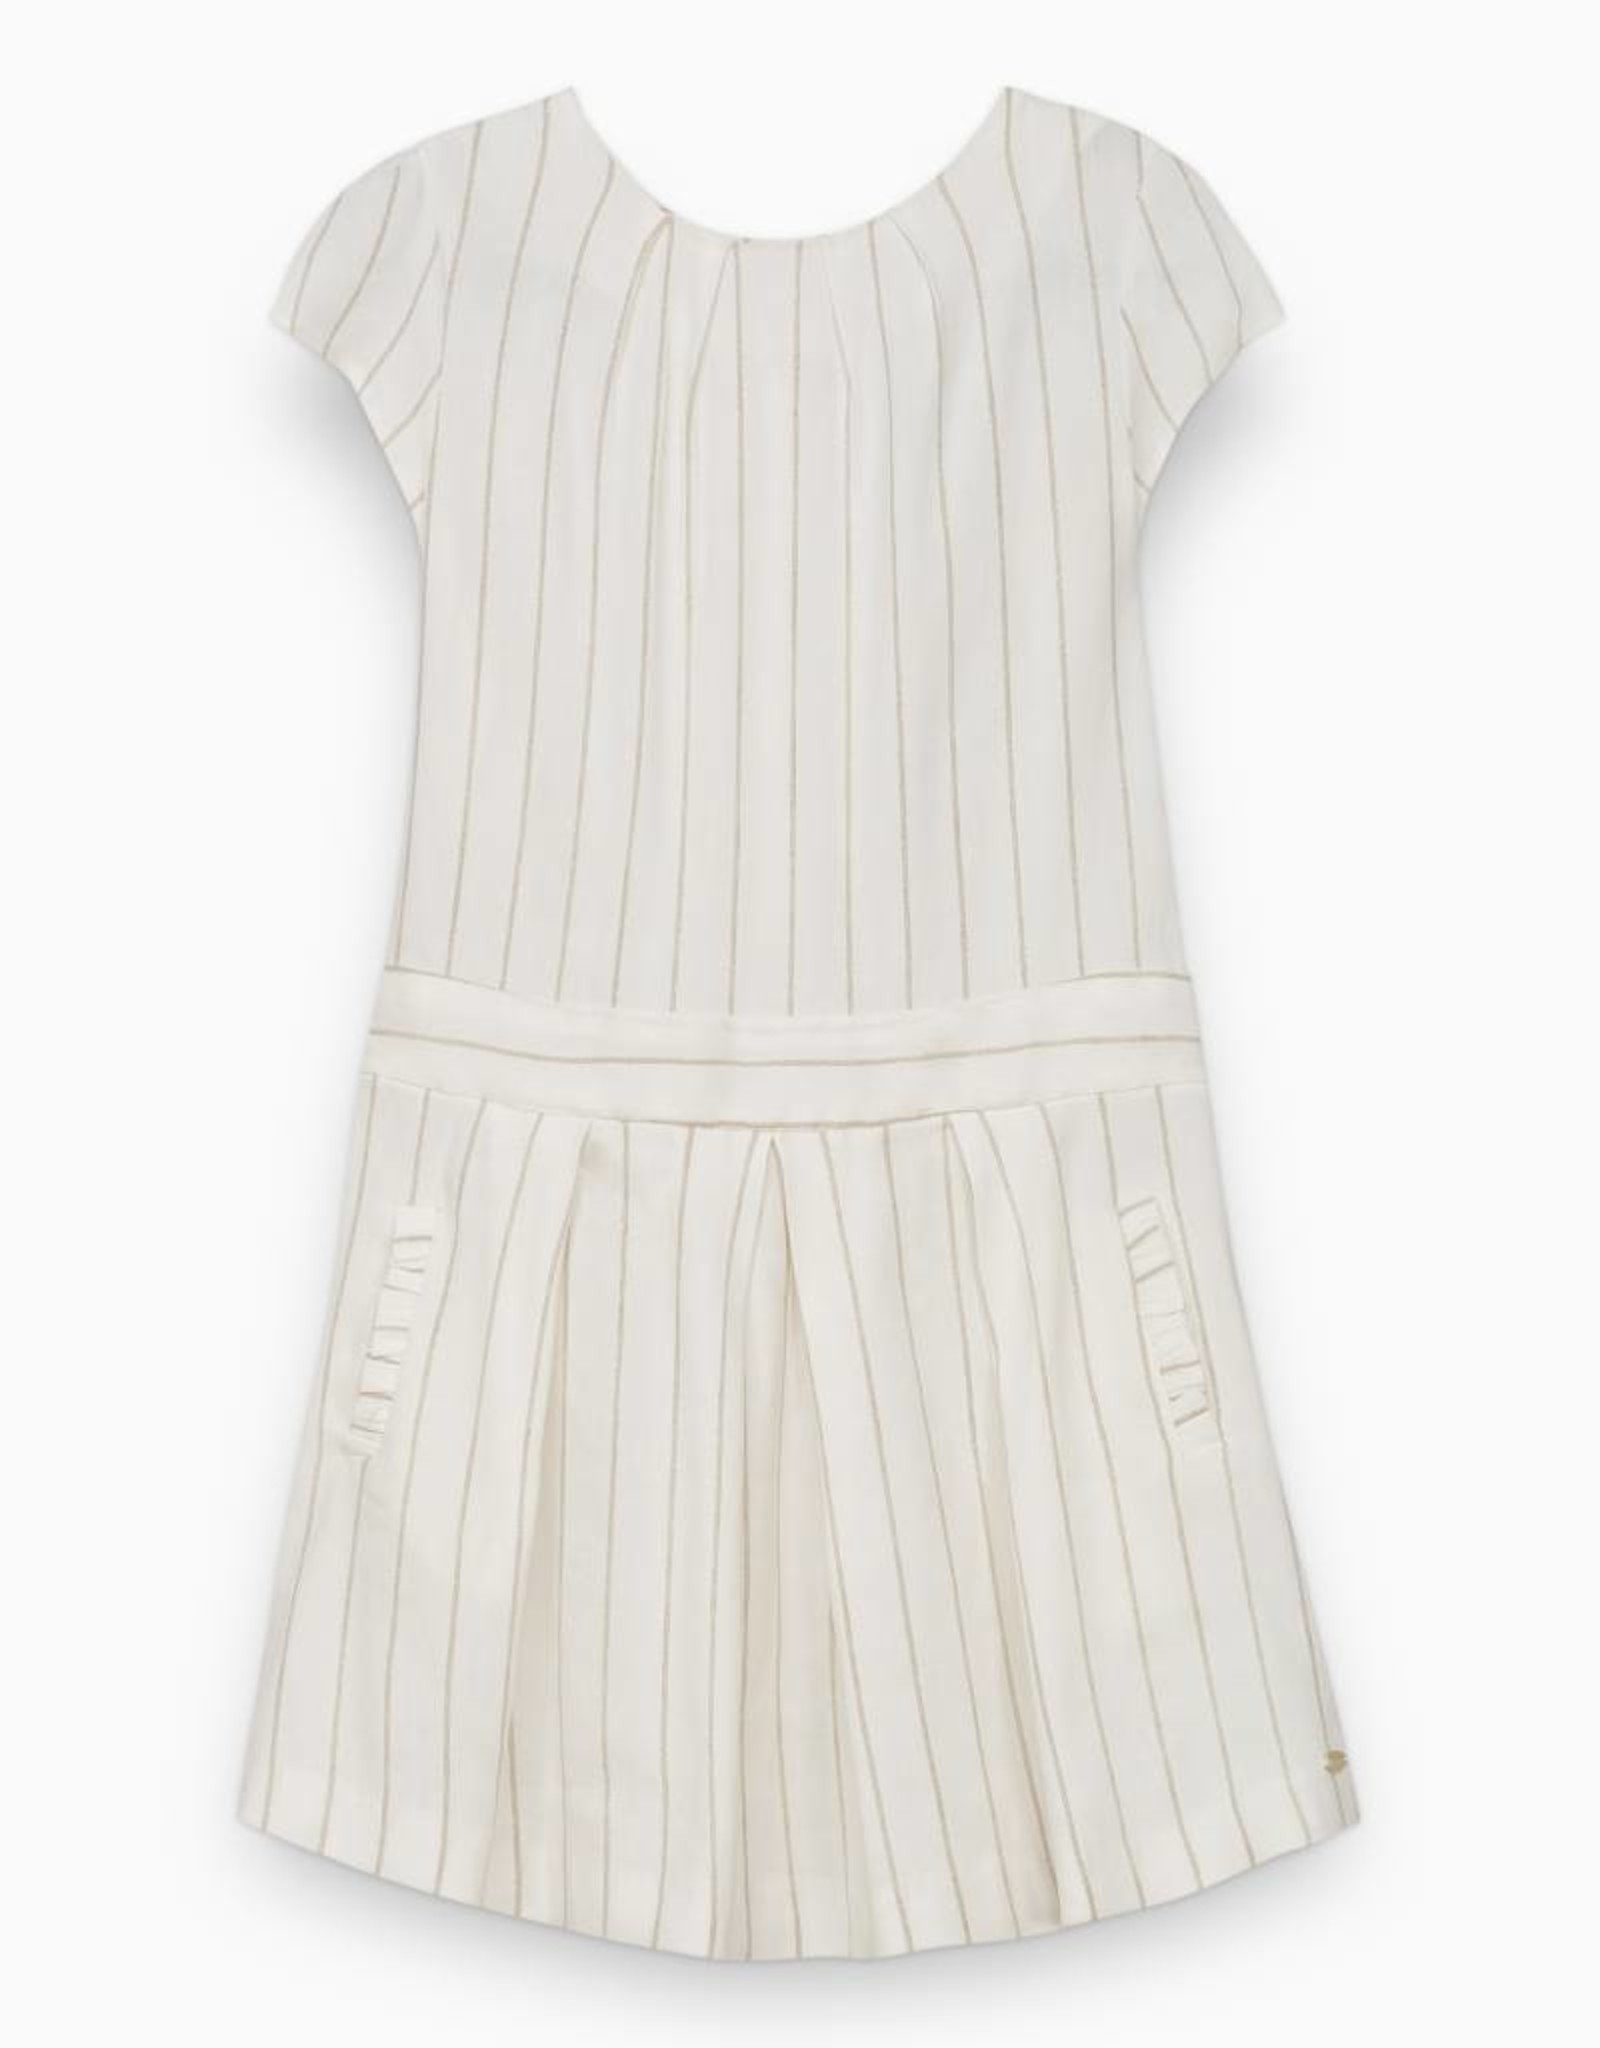 Dress, with golden stripes